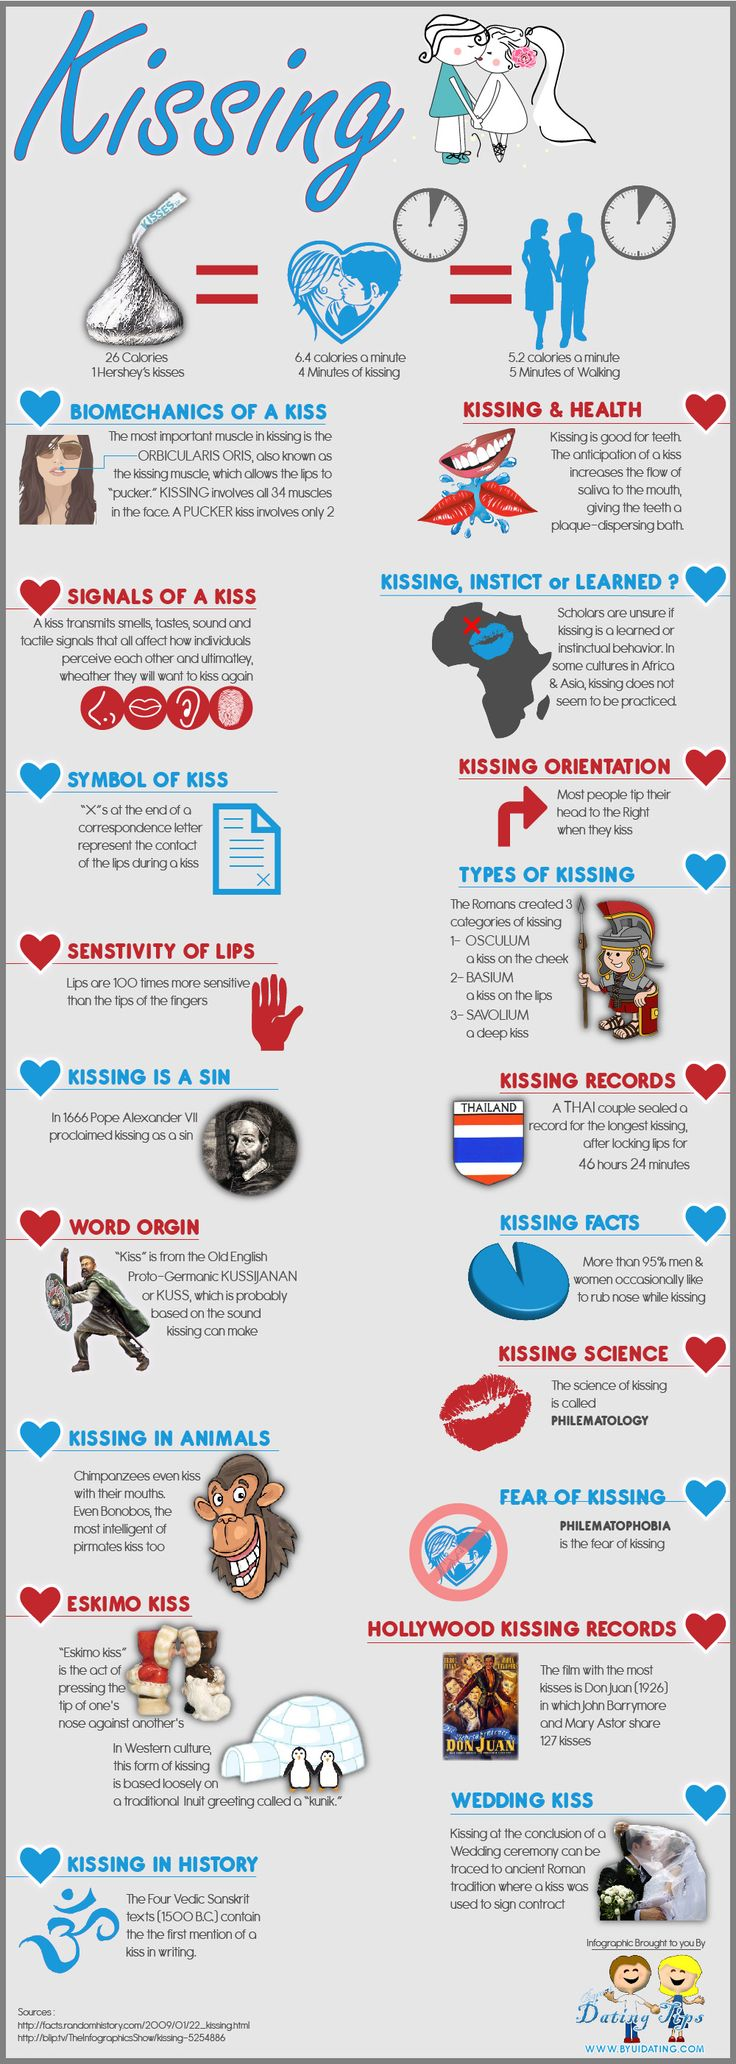 Kissing [infographic] | Daily Infographic